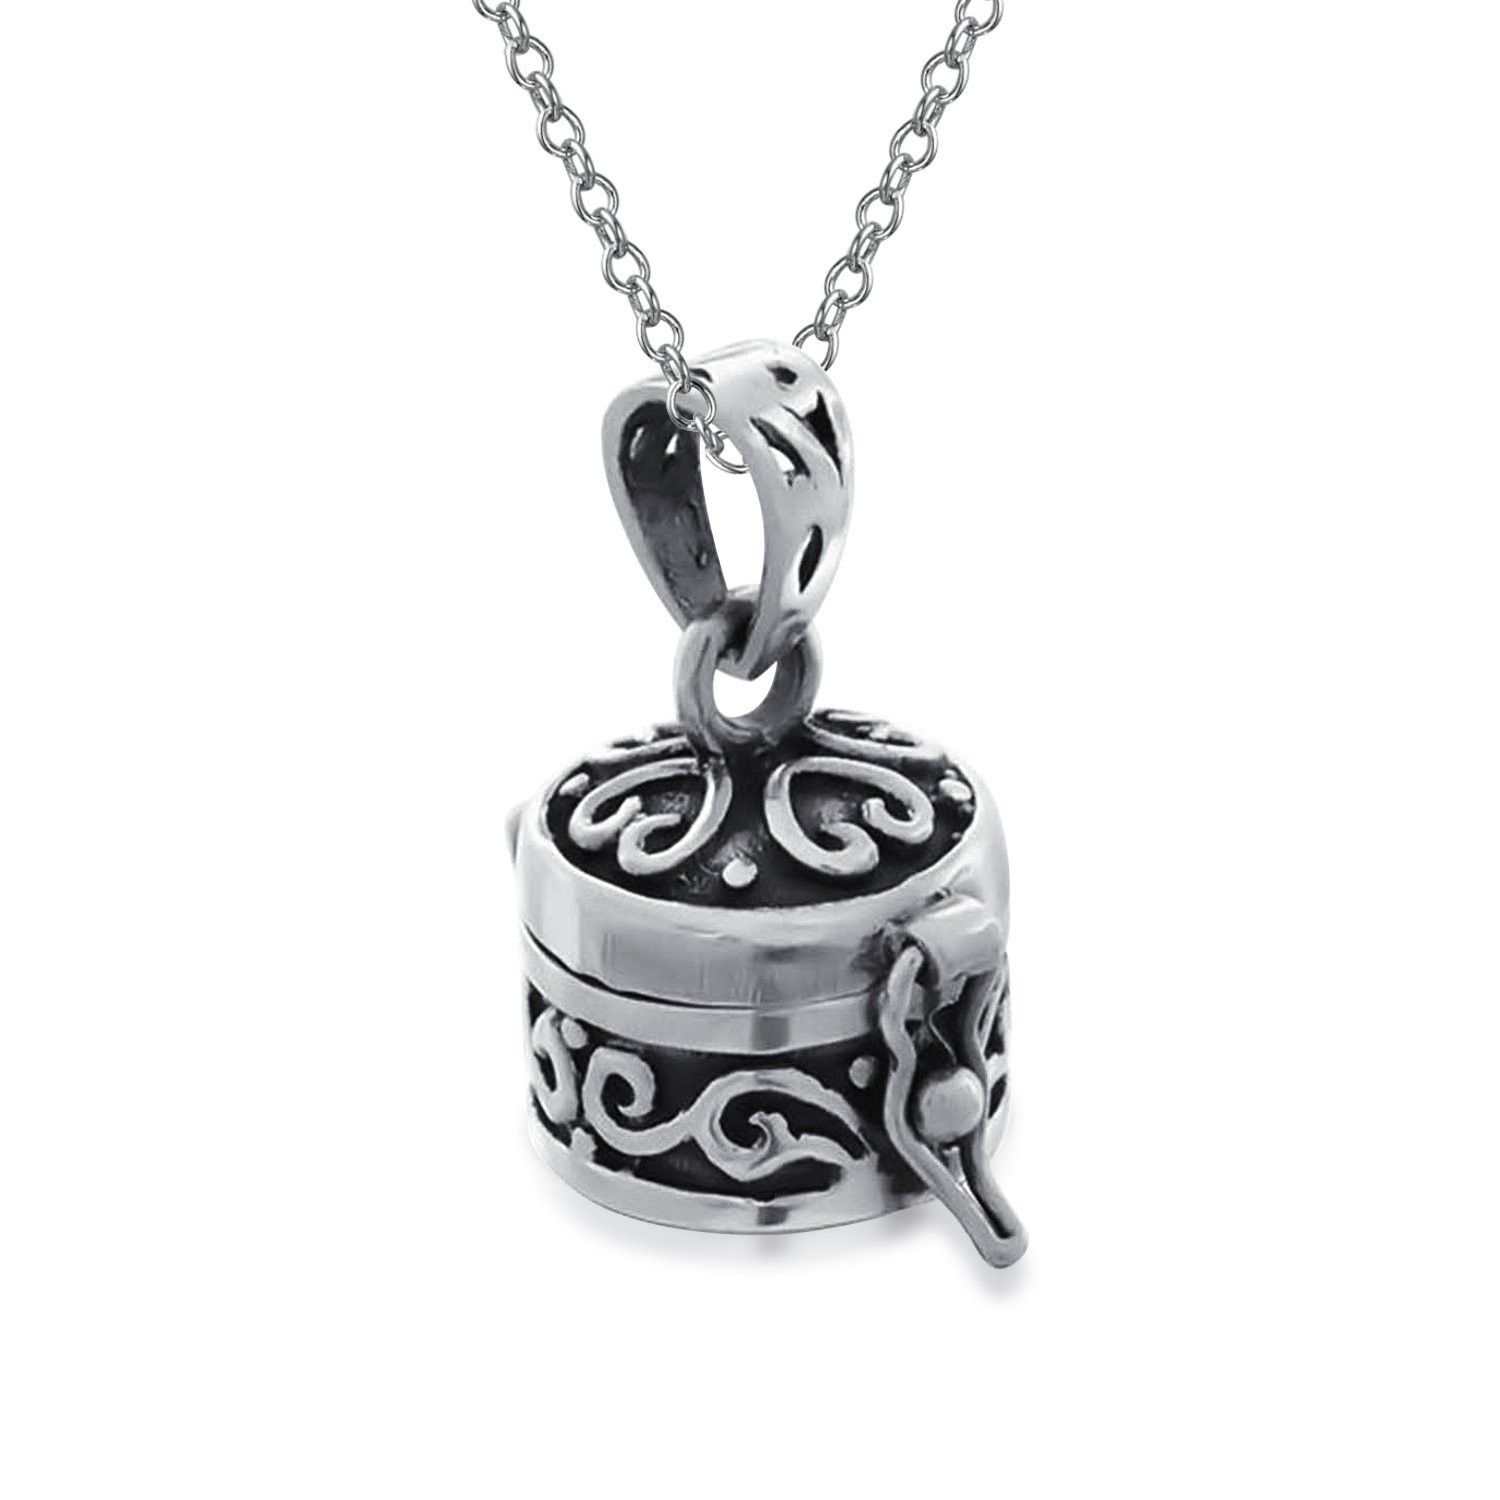 Round antiqued poison prayer box locket pendant sterling silver